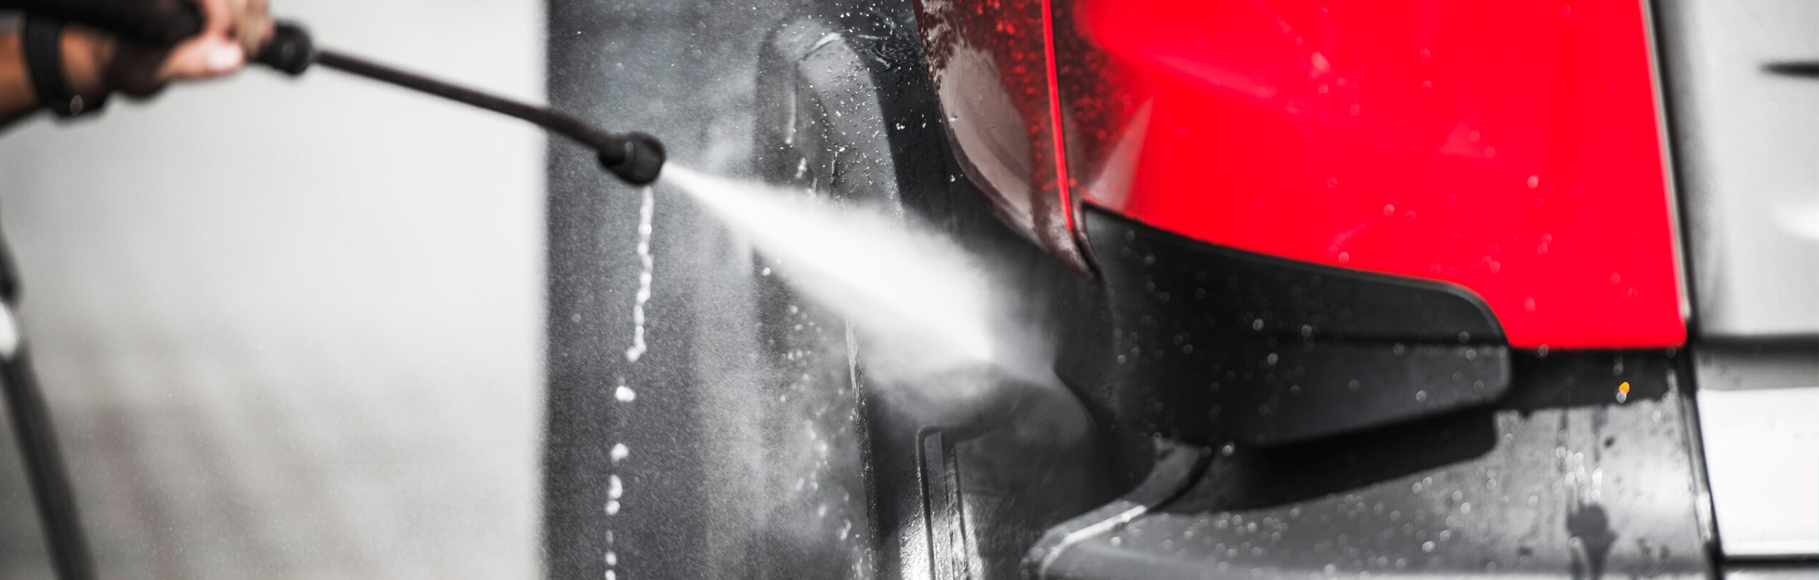 Brush and Touchless Detergents For Fleet & Vehicle Cleaning.